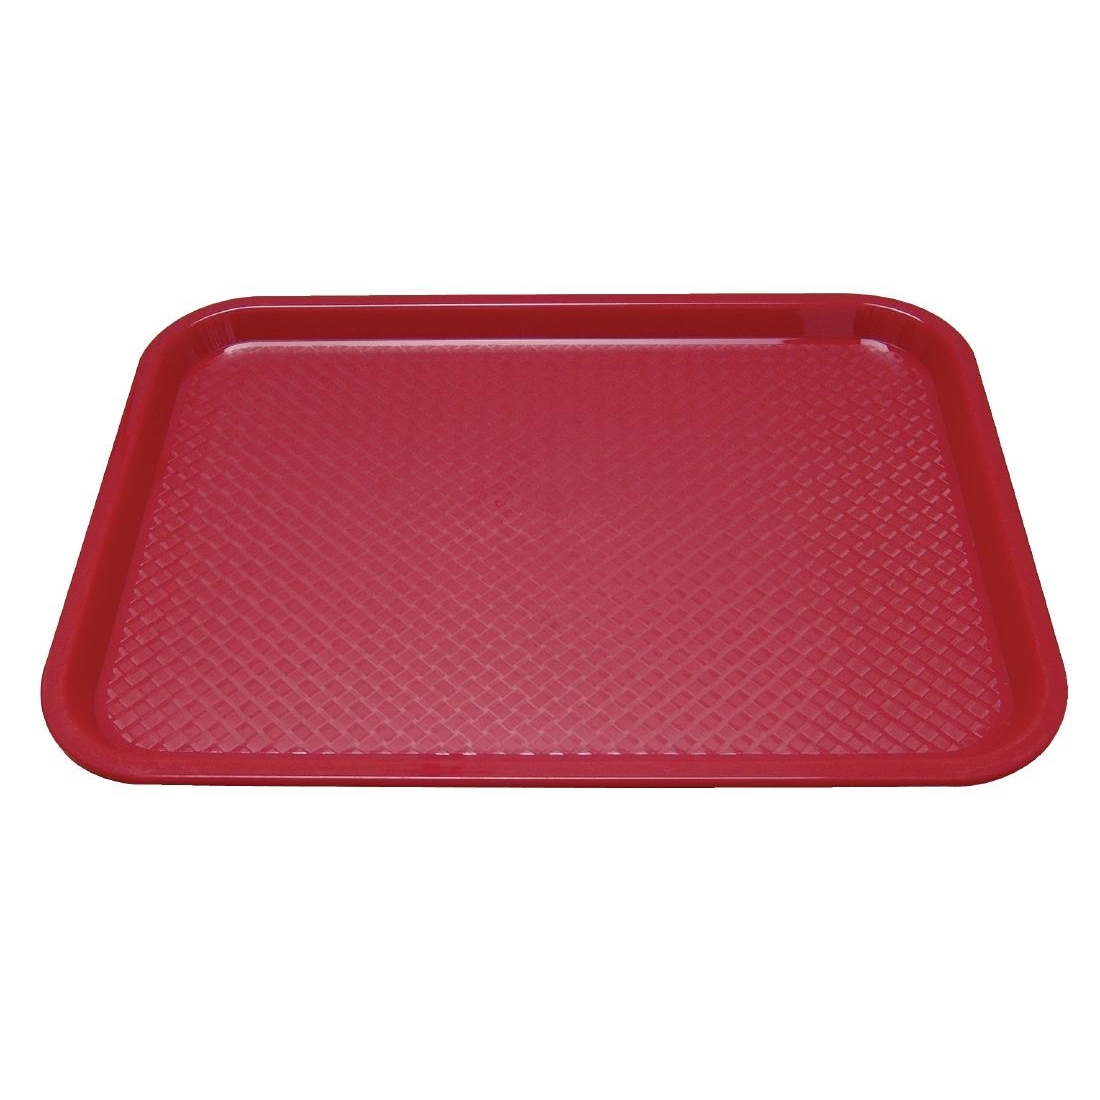 Kristallon Plastic Fast Food Tray Red Medium